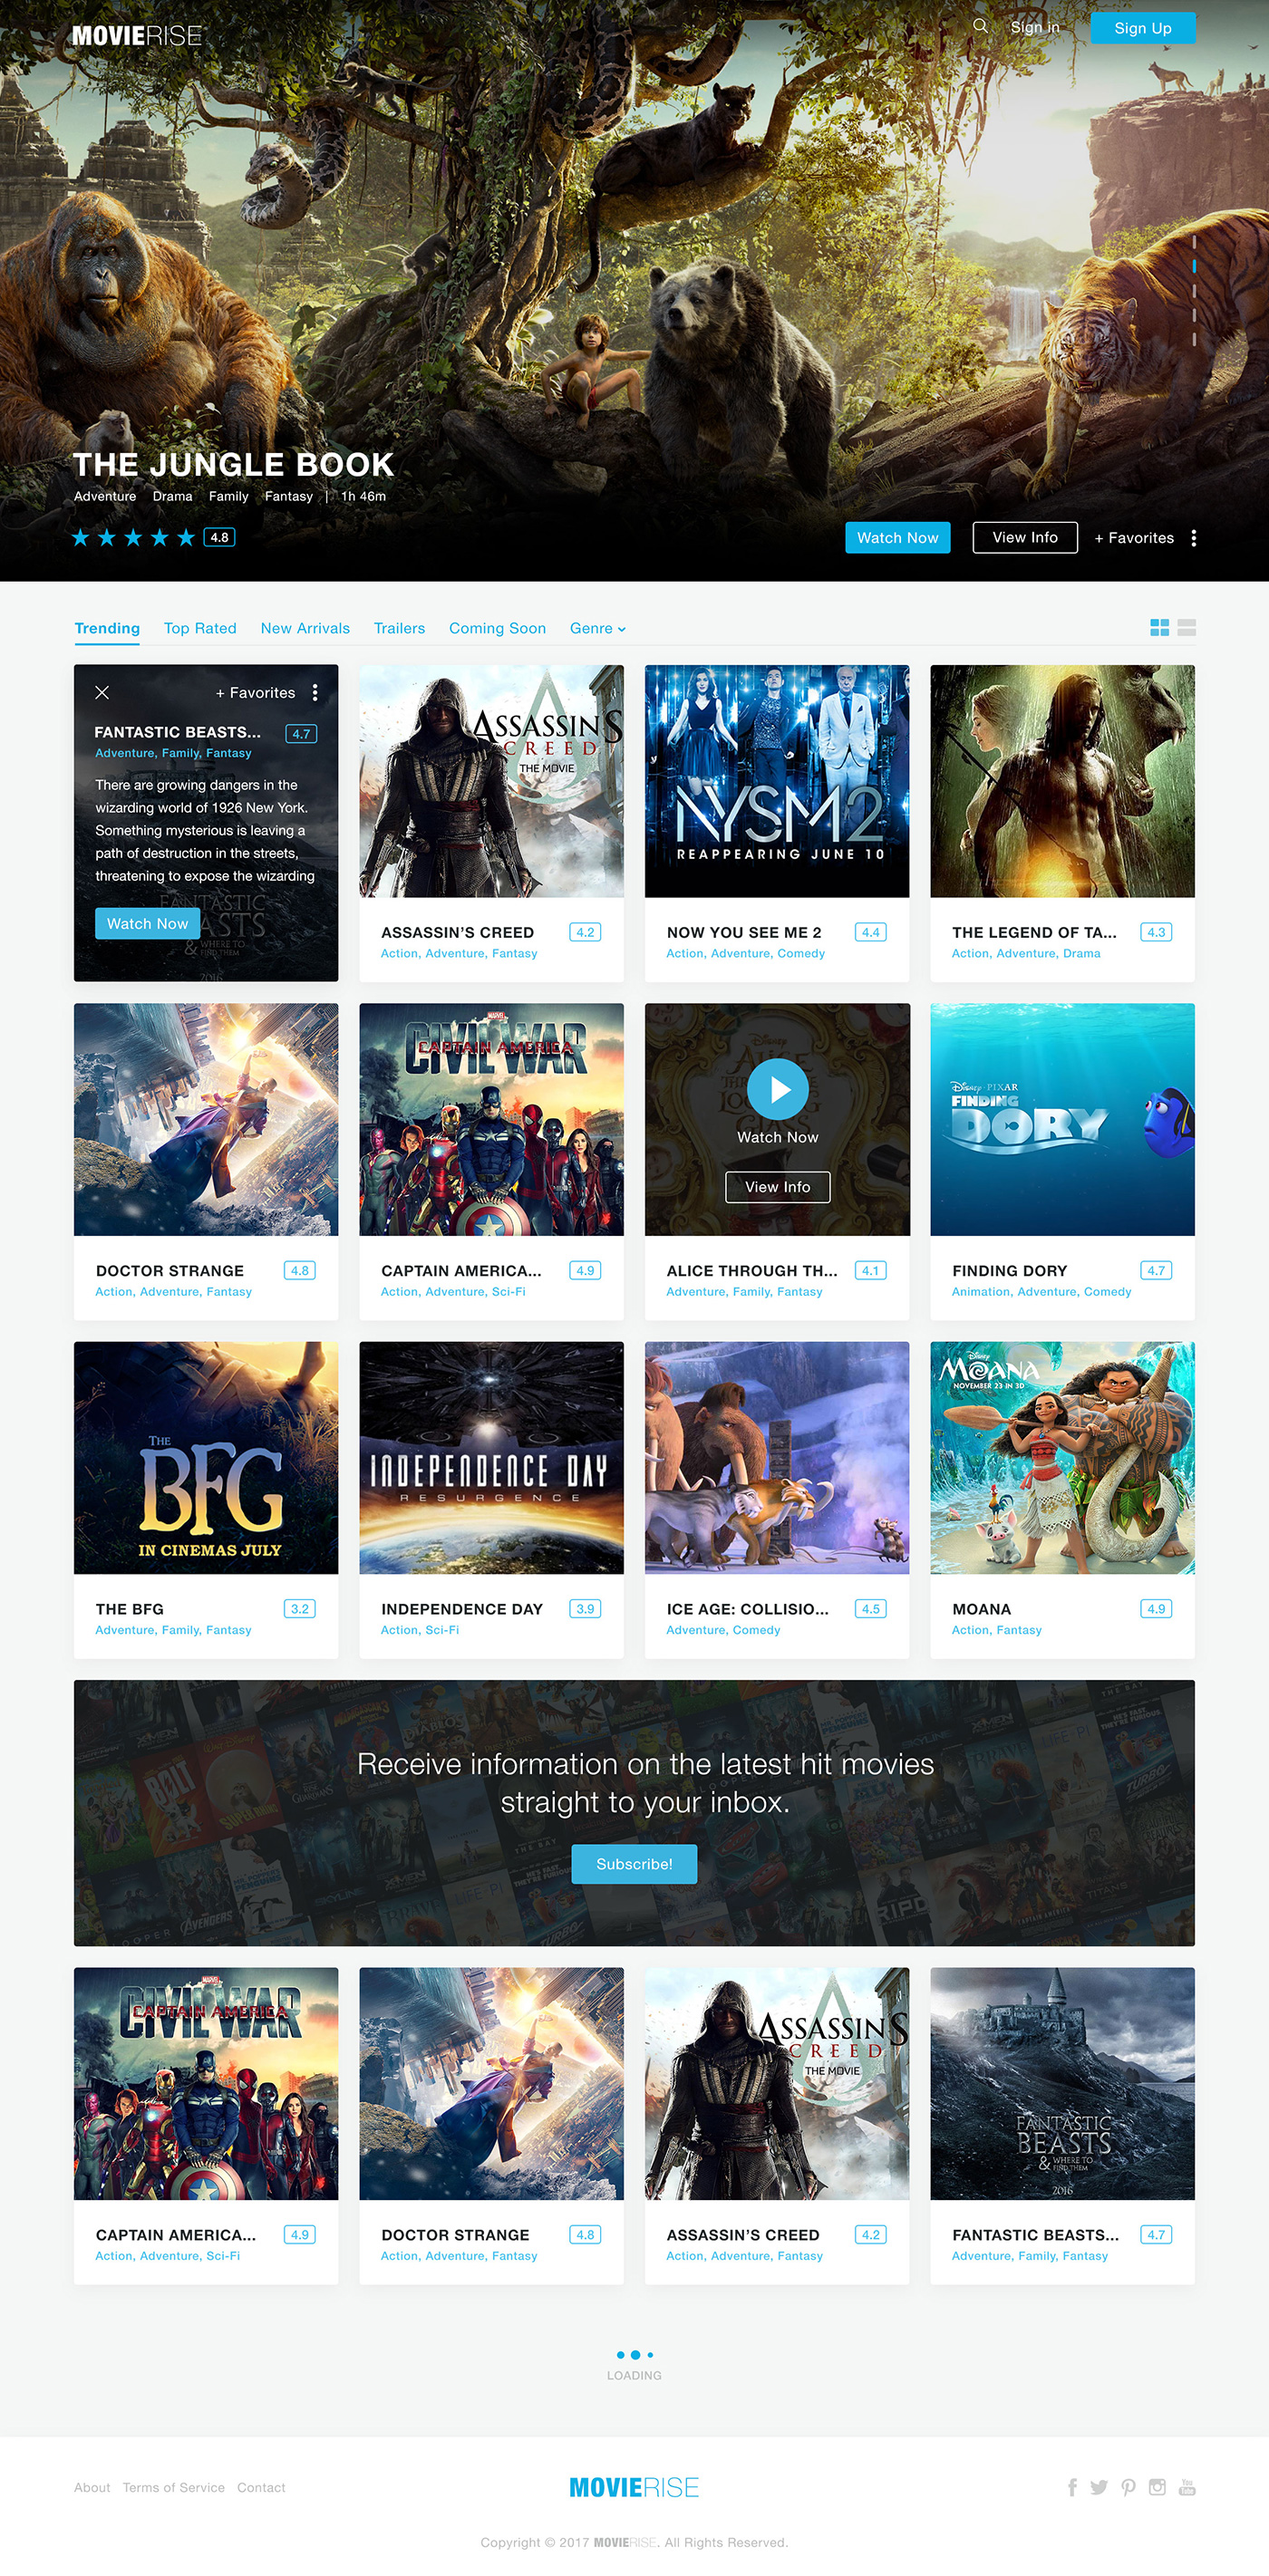 MovieRise Web Homepage for Photoshop Inspired by Netflix